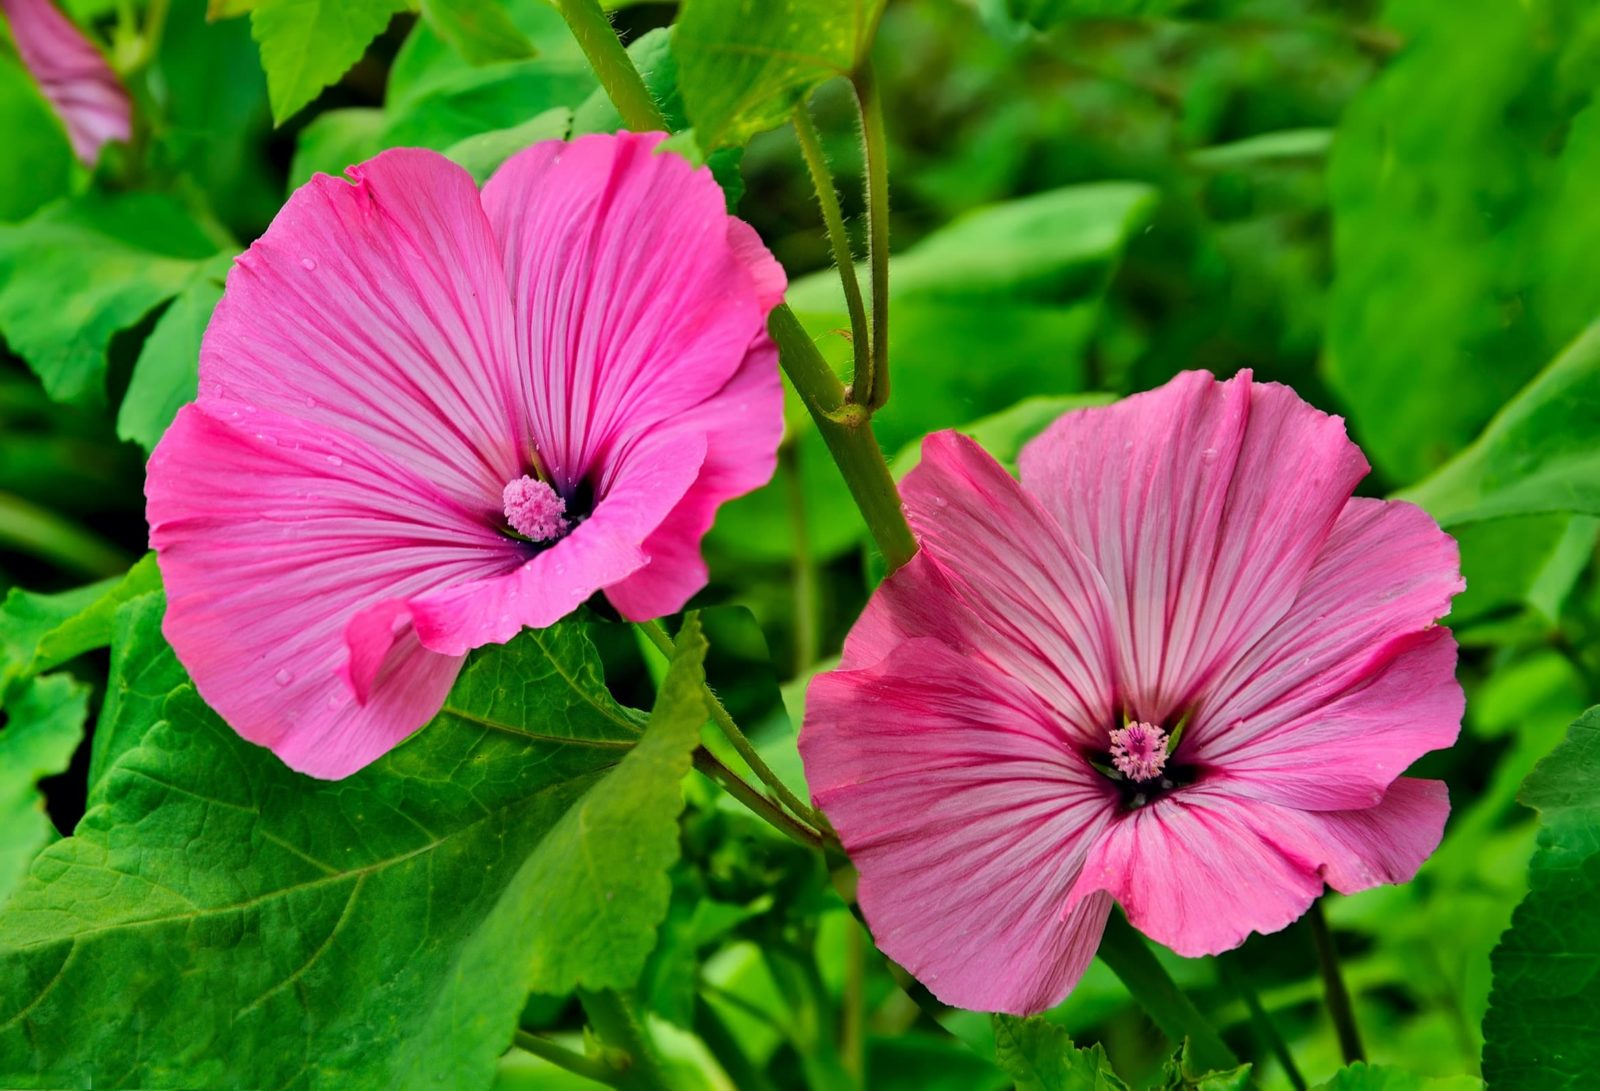 Two pink lavatera flowers with distinctive stripes